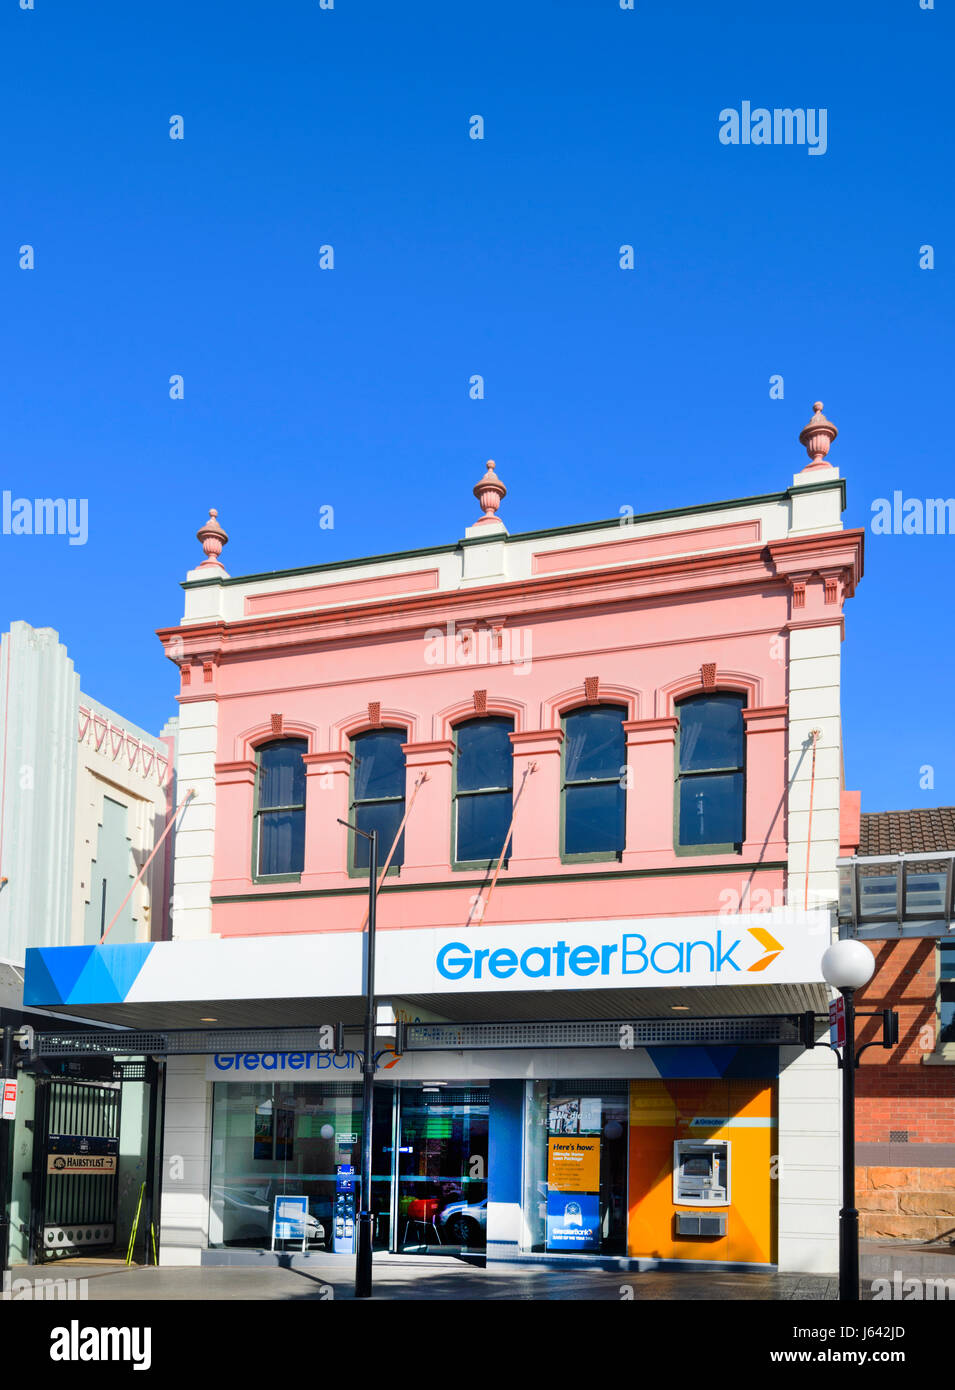 A Greater Bank branch in an old pink building, Junction Street, Nowra, New South Wales, NSW, Australia - Stock Image